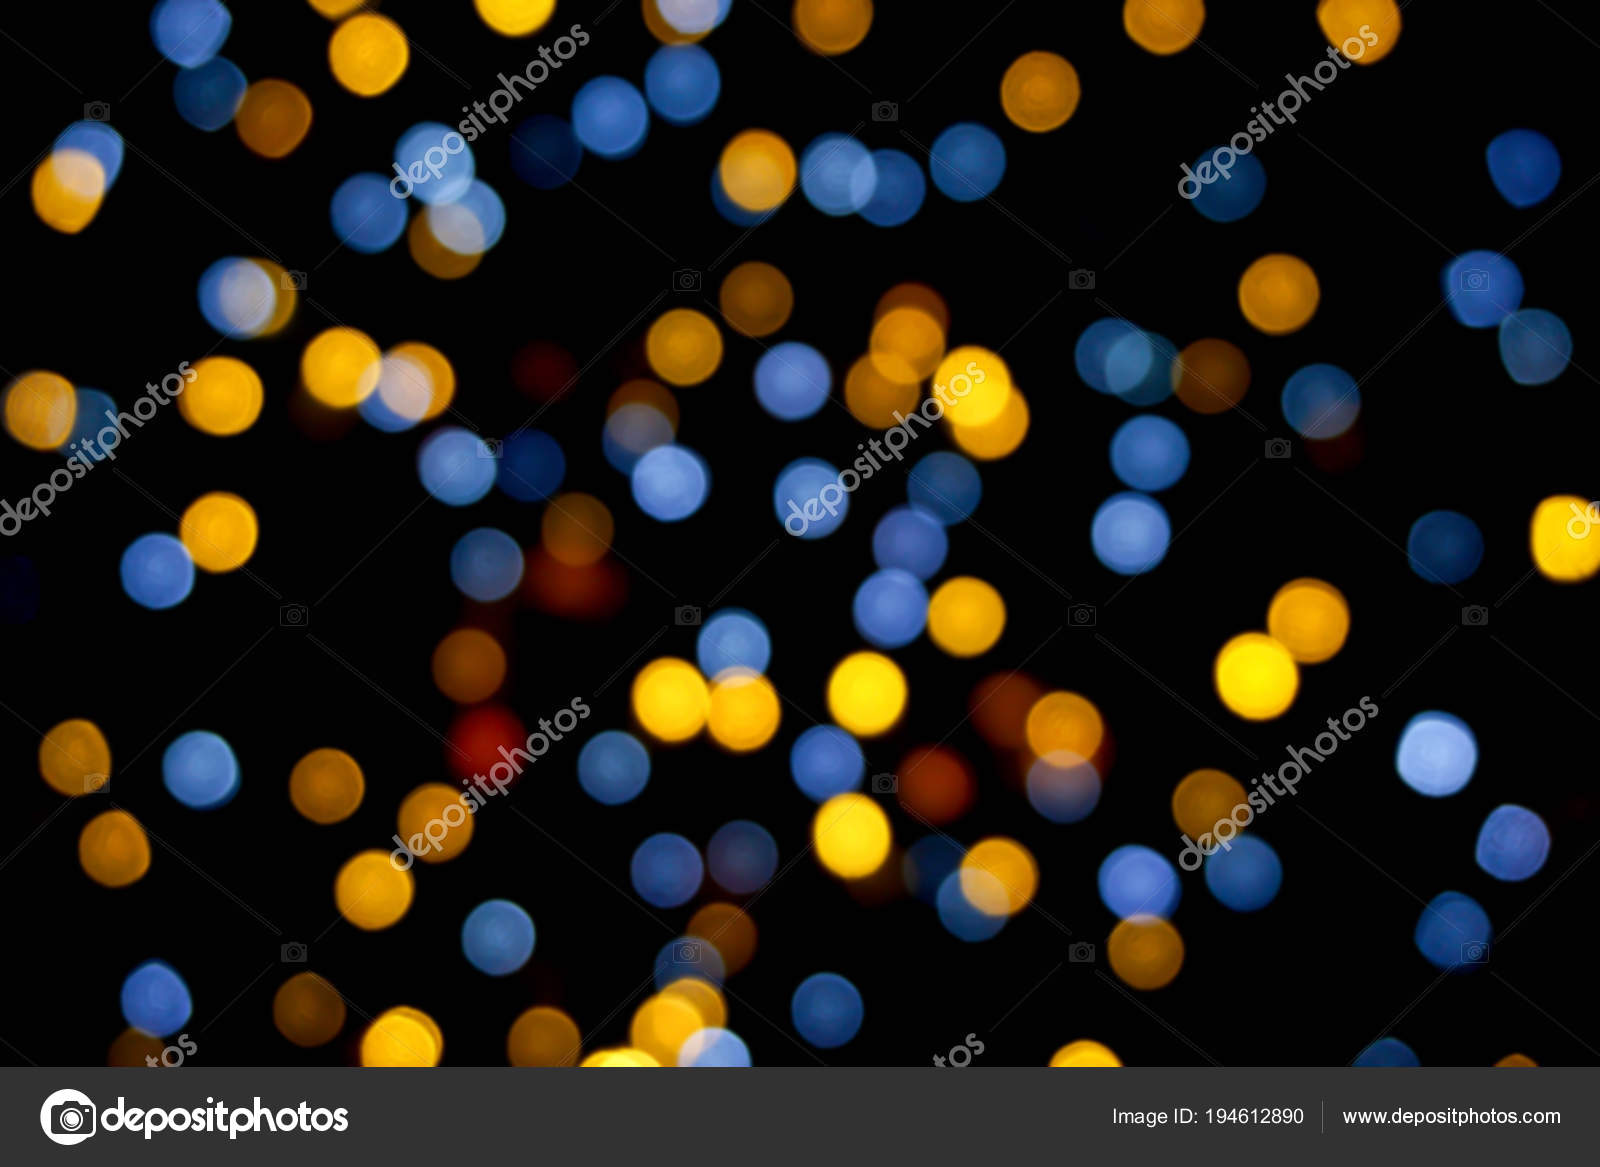 Background and wallpaper colorful abstract with blurred and bokeh of LED party light bubs reflection on black background.